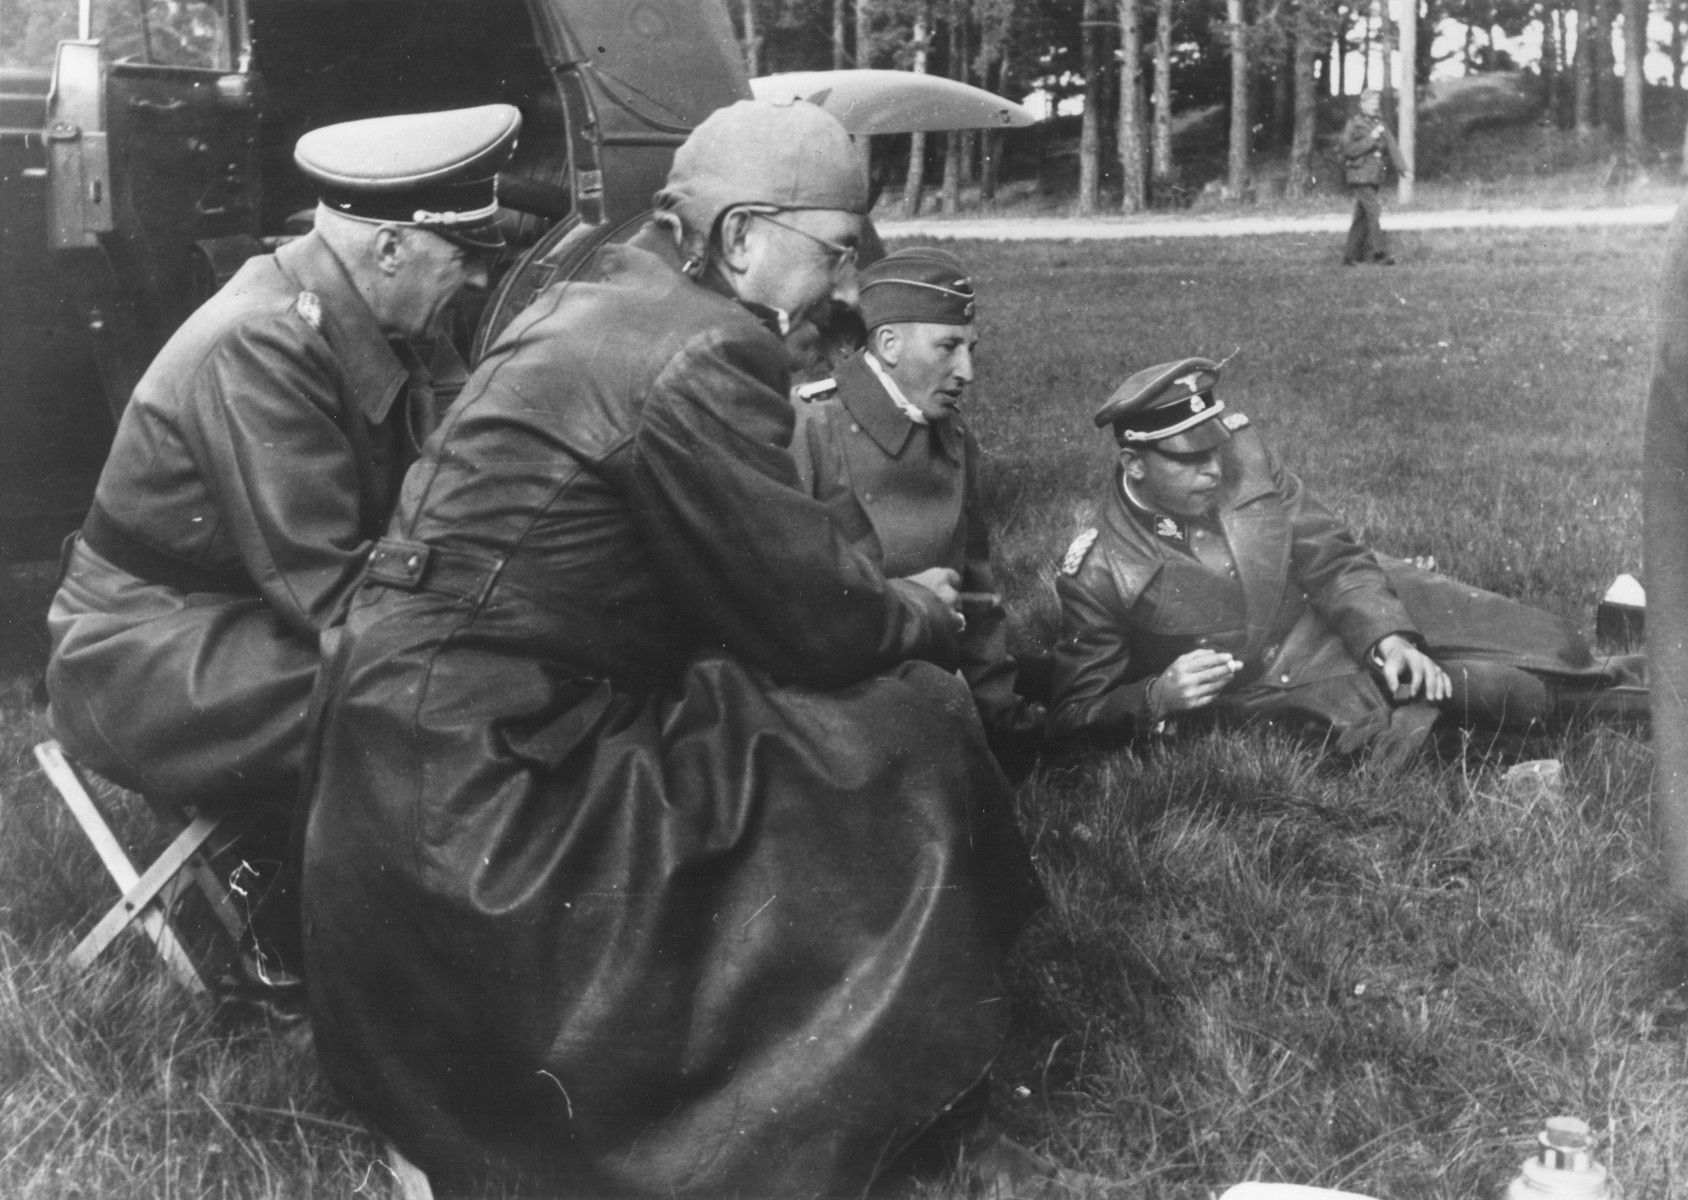 Reichsfuehrer-SS Heinrich Himmler smokes a cigar outside on the grass with Reinhard Heydrich and two other officers during a trip to Estonia.  Himmler is pictured in the foreground, and Heydrich, in the background in the center. SS Police Chief Leader Hans Adolf Pruetzmann is lying on the grass.